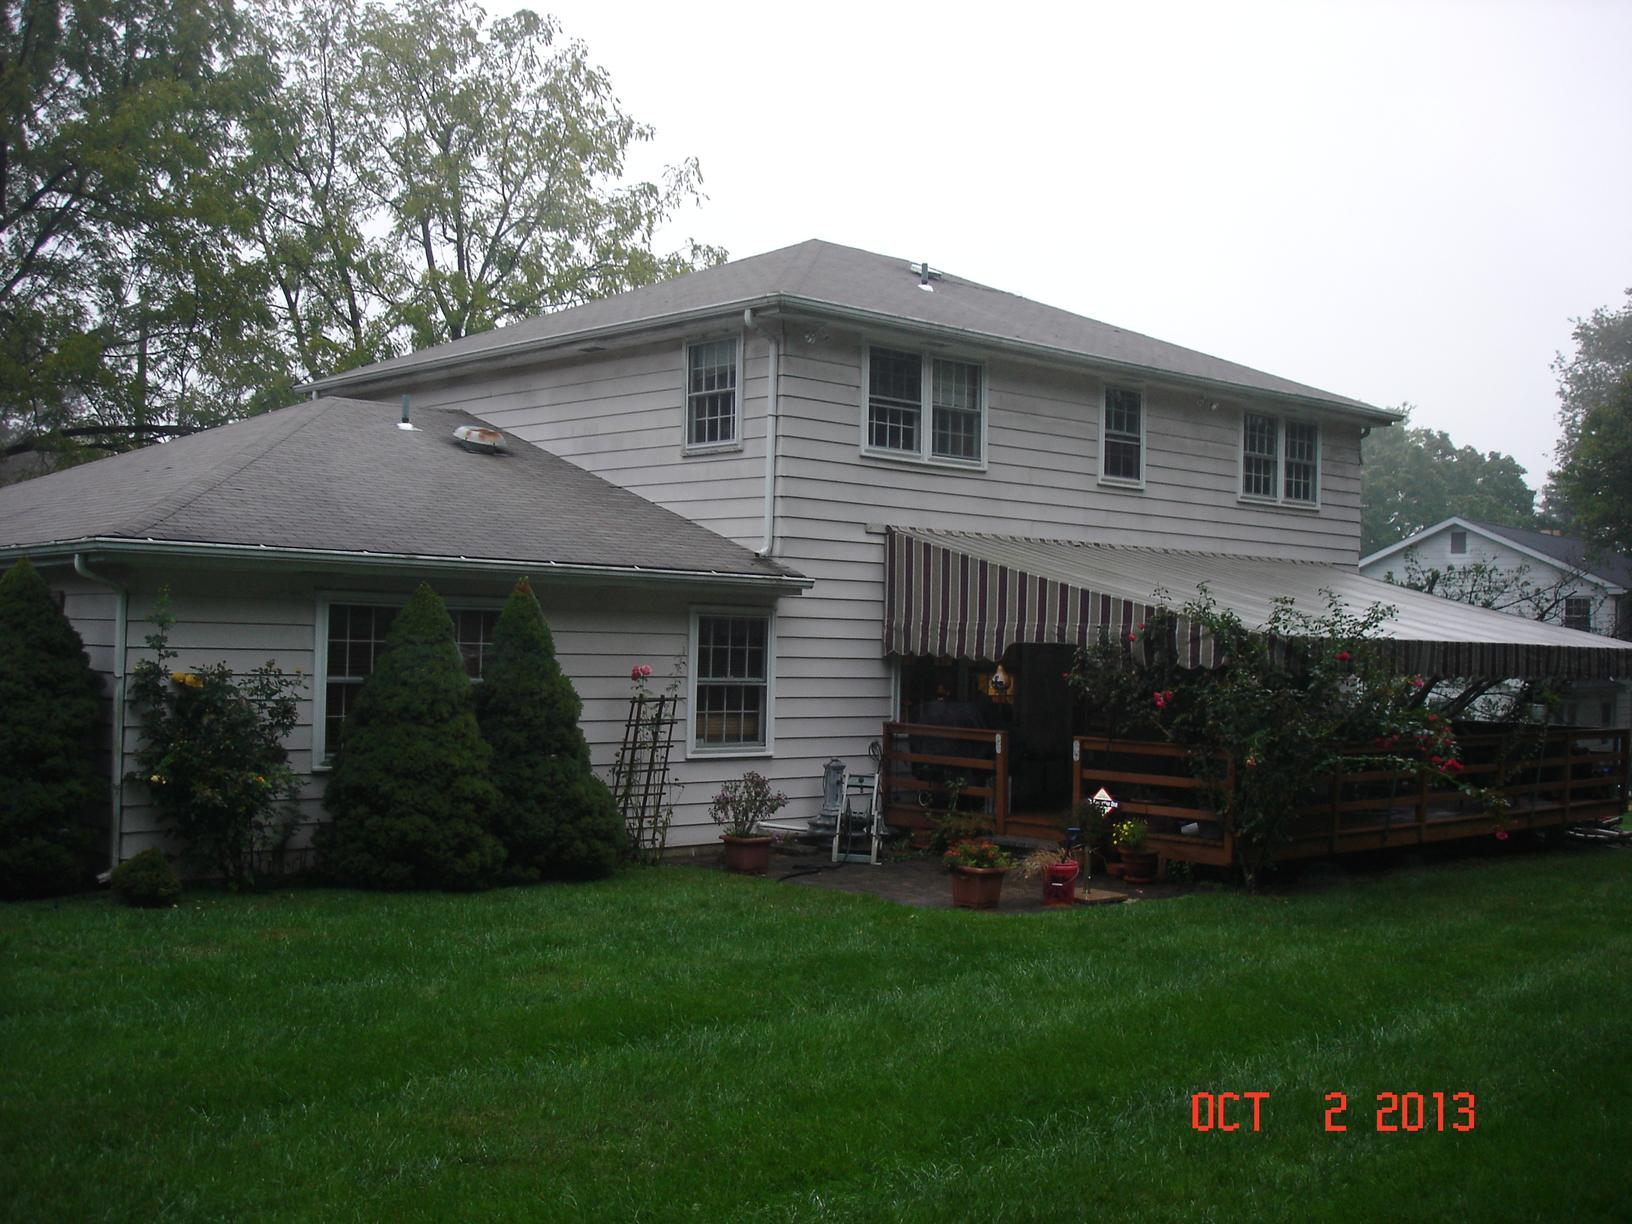 Vermont Blue Metal Slate Roof, Tuscan Clay Beaded Insulated Vinyl Siding, Custom Marvin Infinity Double Hung Fiberglass Windows, and Rear Porch Portico Installation in Lafayette Hill, PA - Before Photo